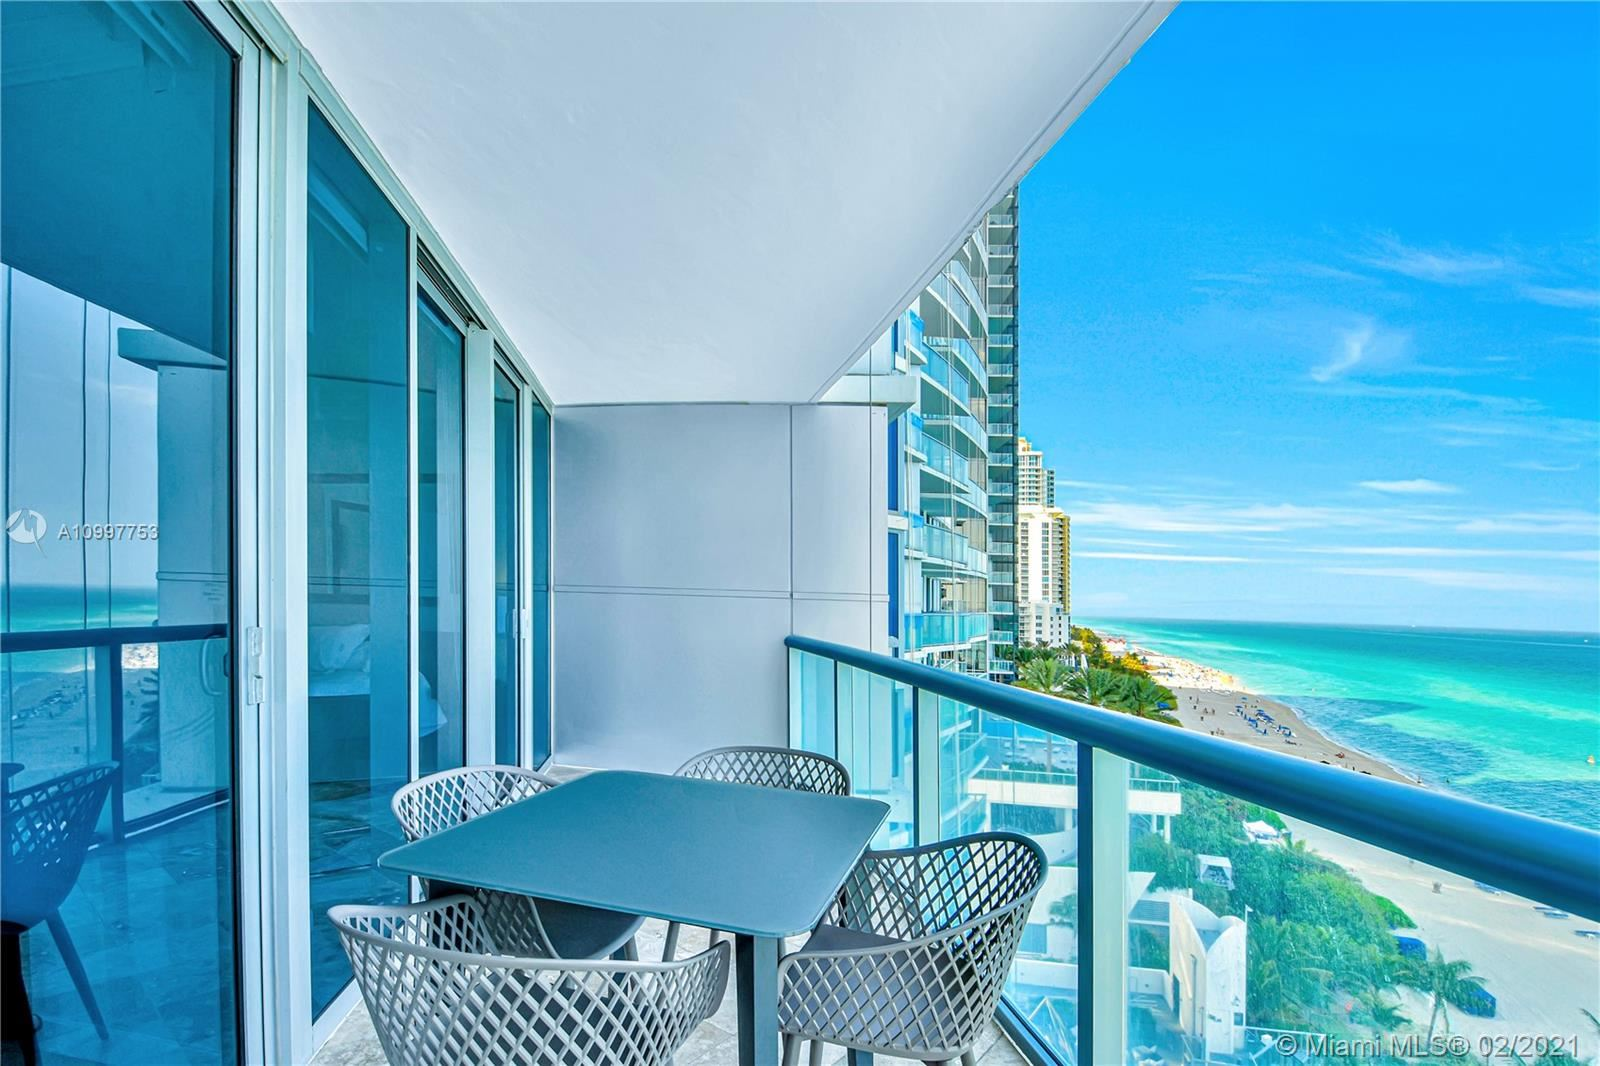 17001 Collins Ave #1103, Sunny Isles, FL 33160 - #: A10997753